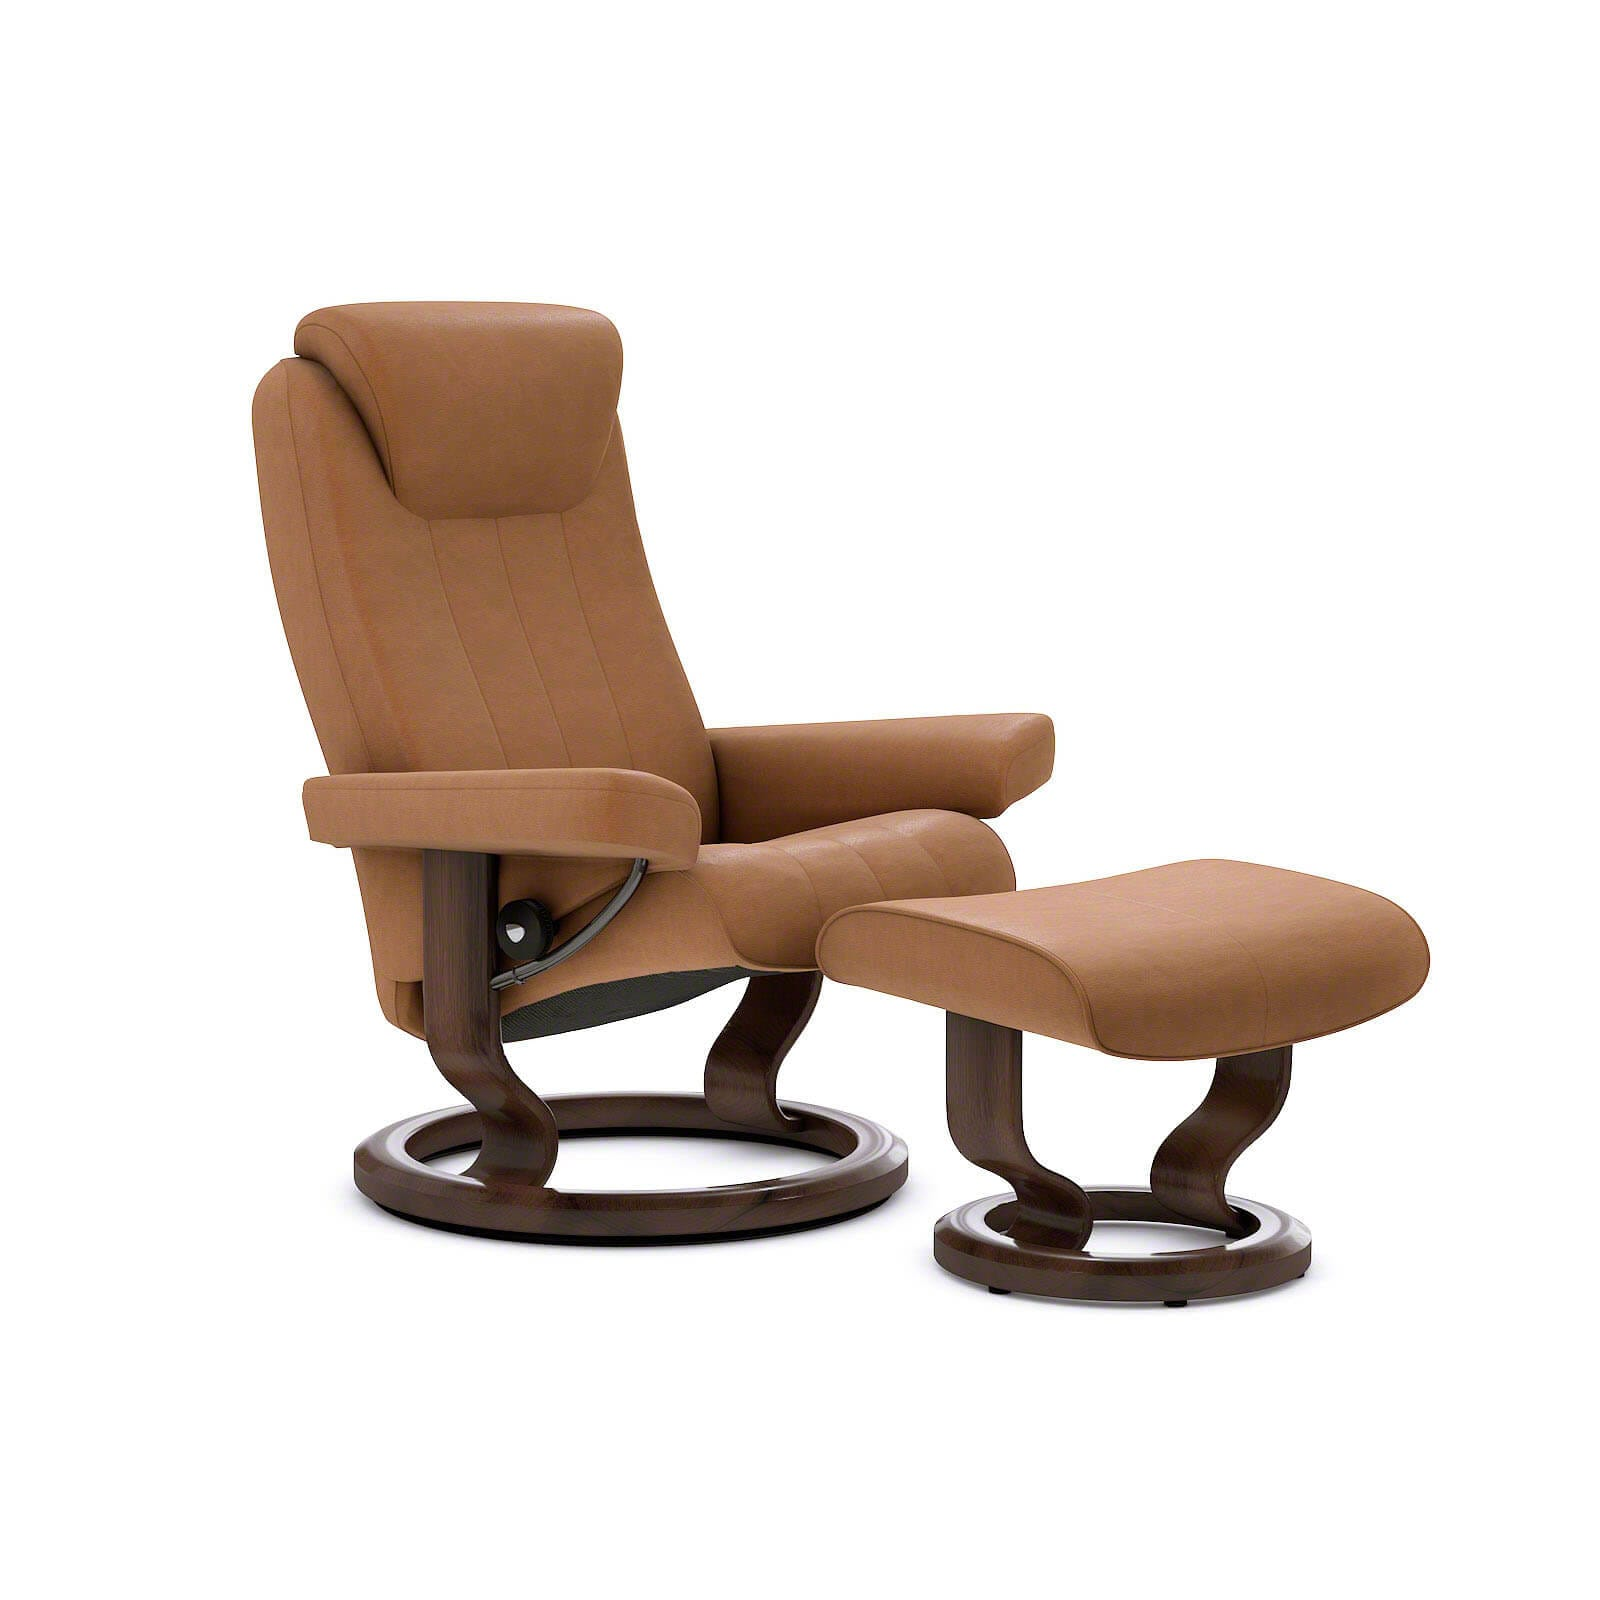 Stressless Bliss Sessel Taupe Mit Hocker Stressless Shop